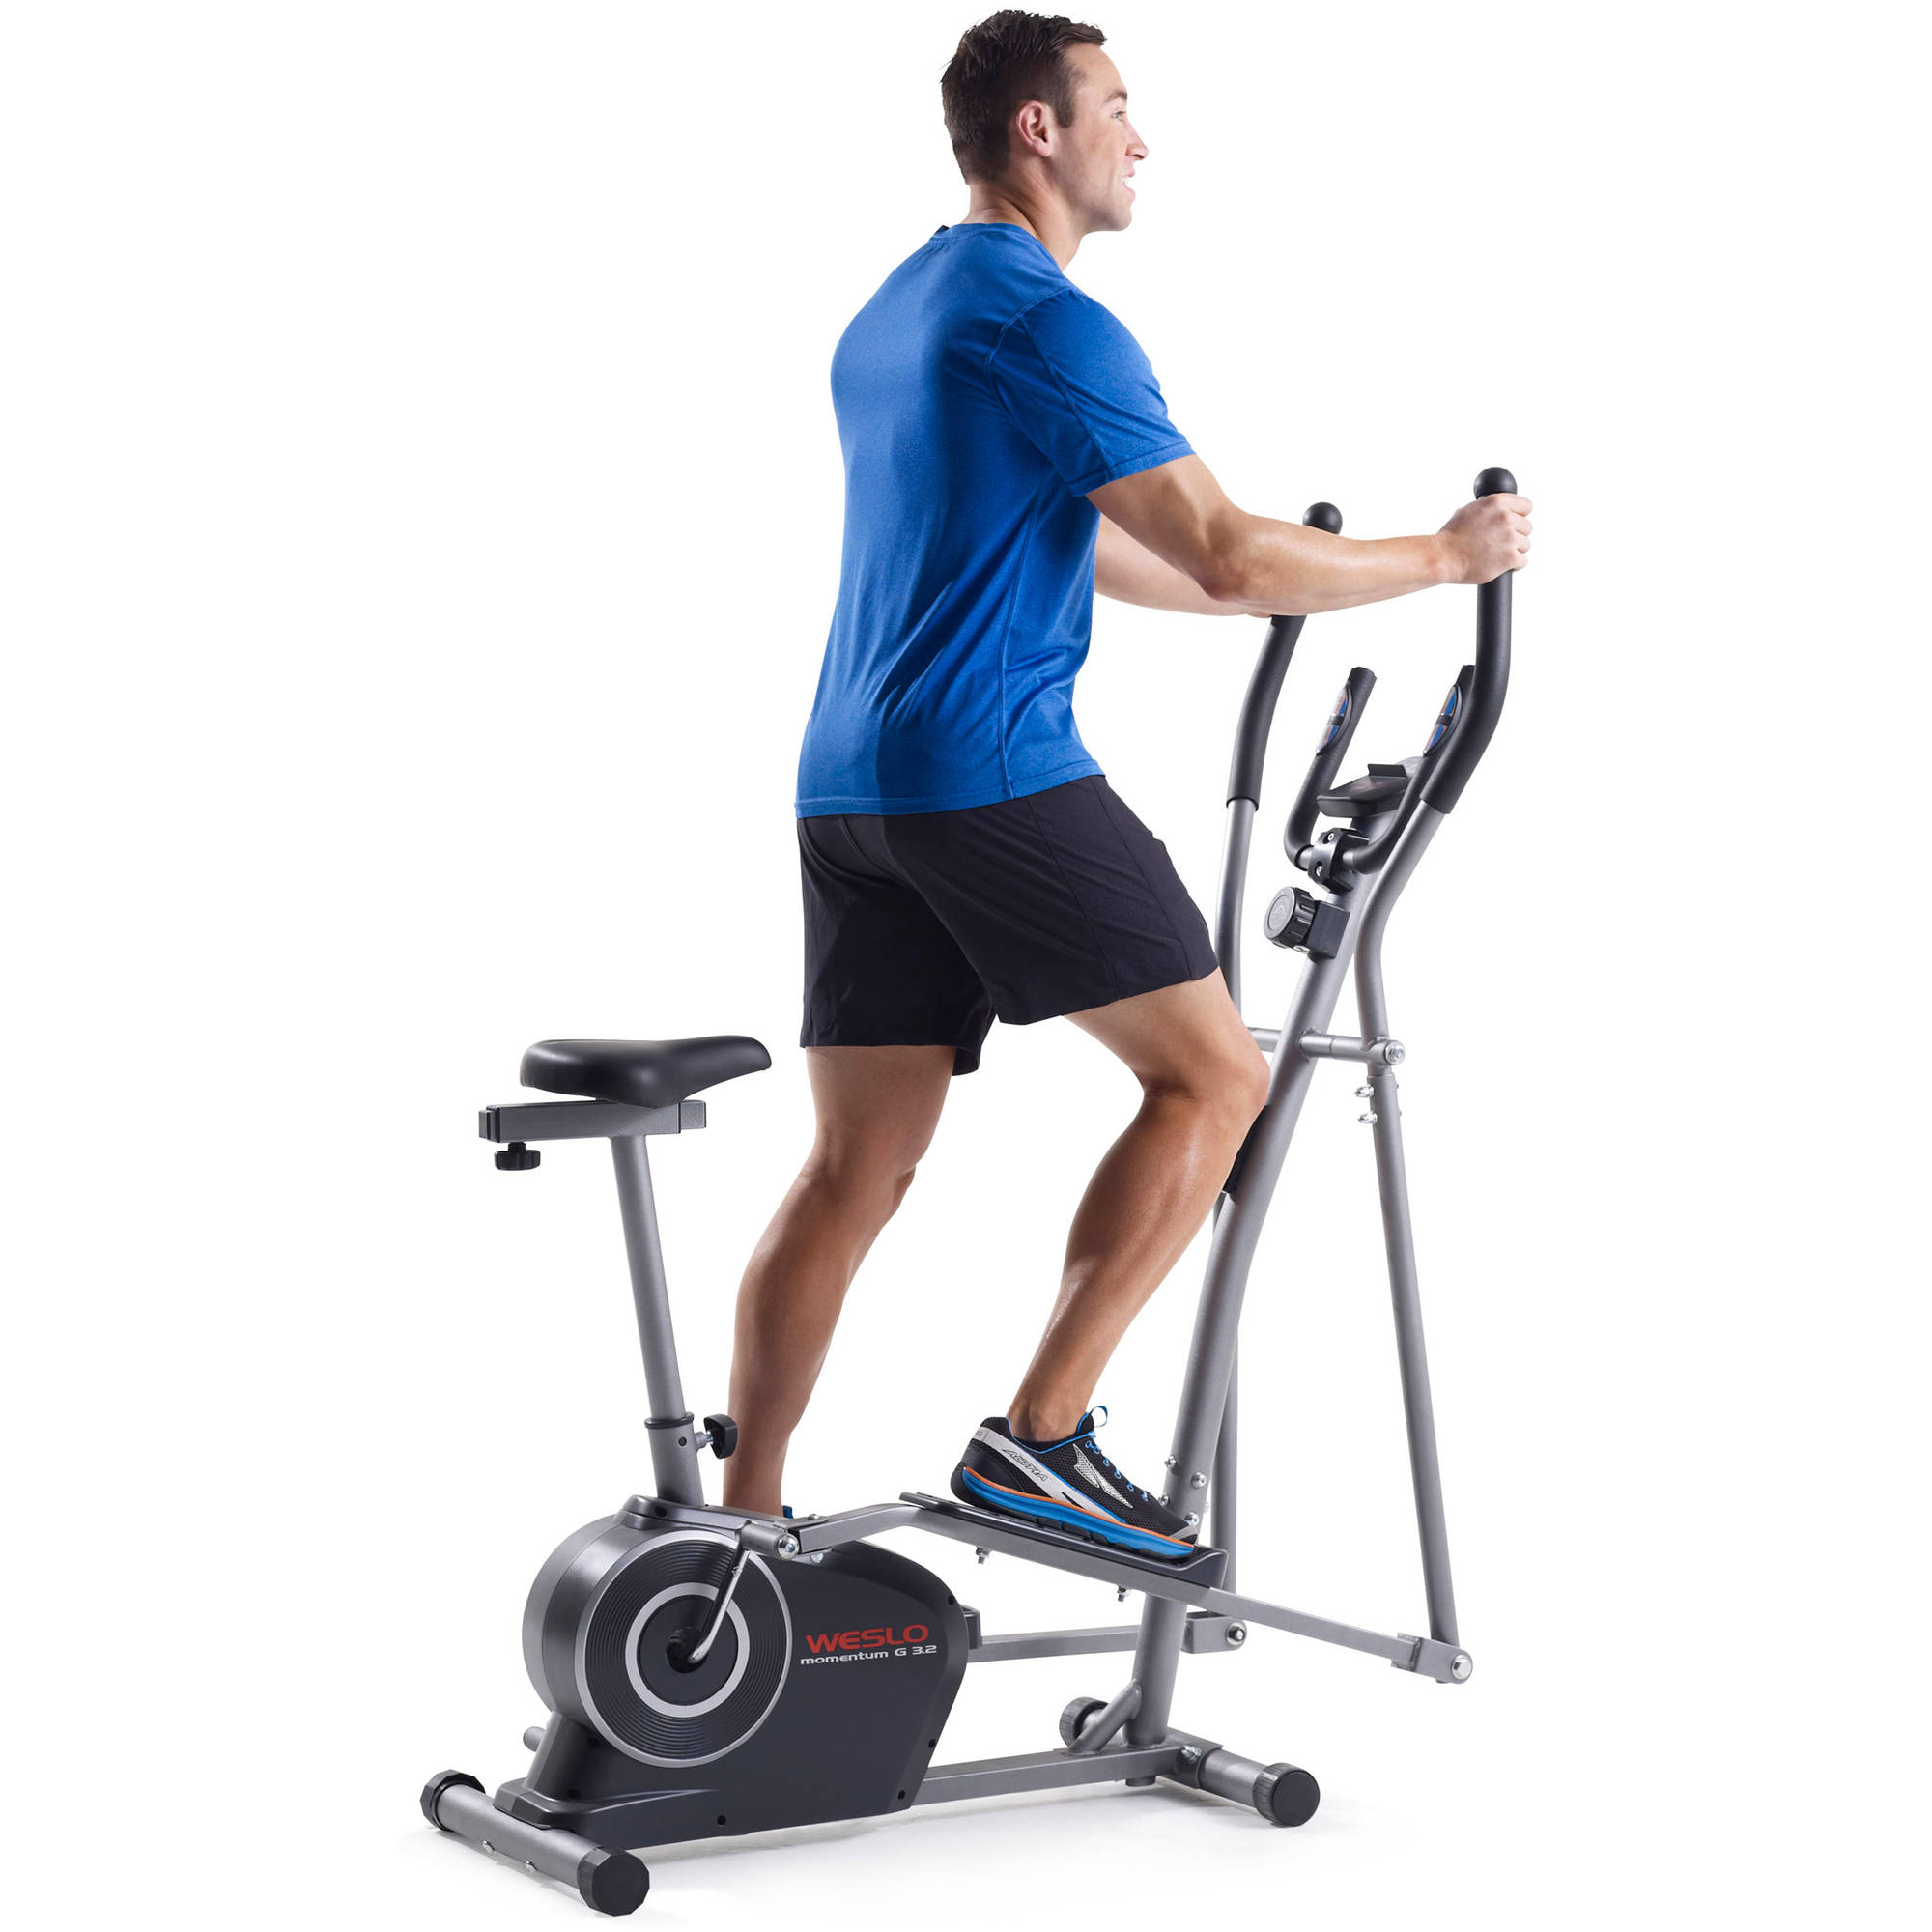 Weslo Momentum G 3.2 Bike Elliptical 2-in-1 Hybrid Trainer by Icon Health & Fitness Inc.